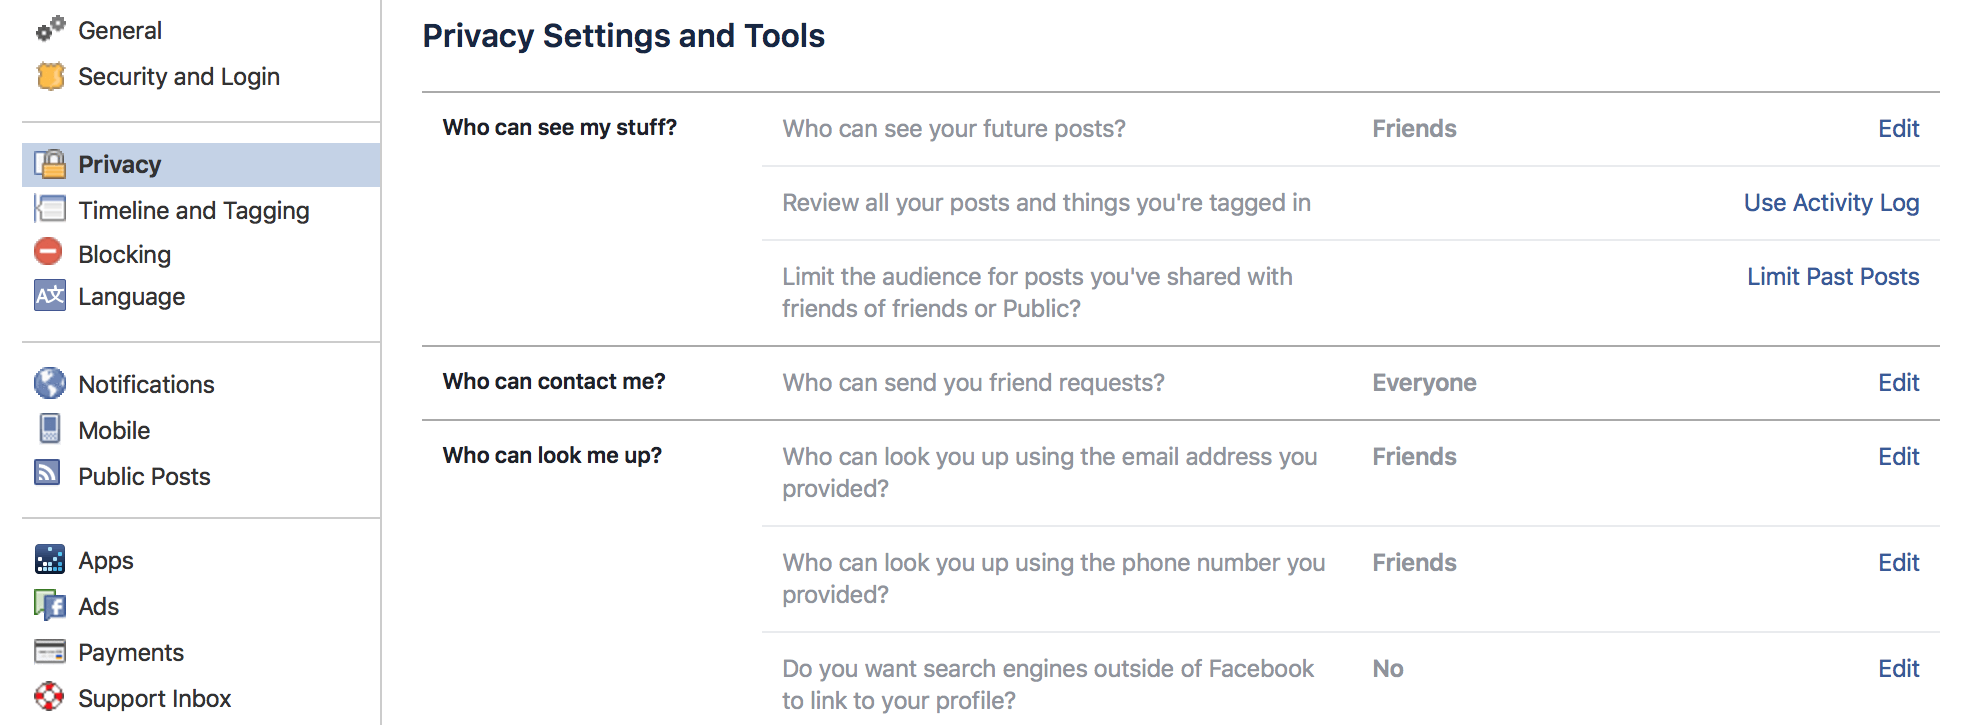 How to change your Facebook privacy settings